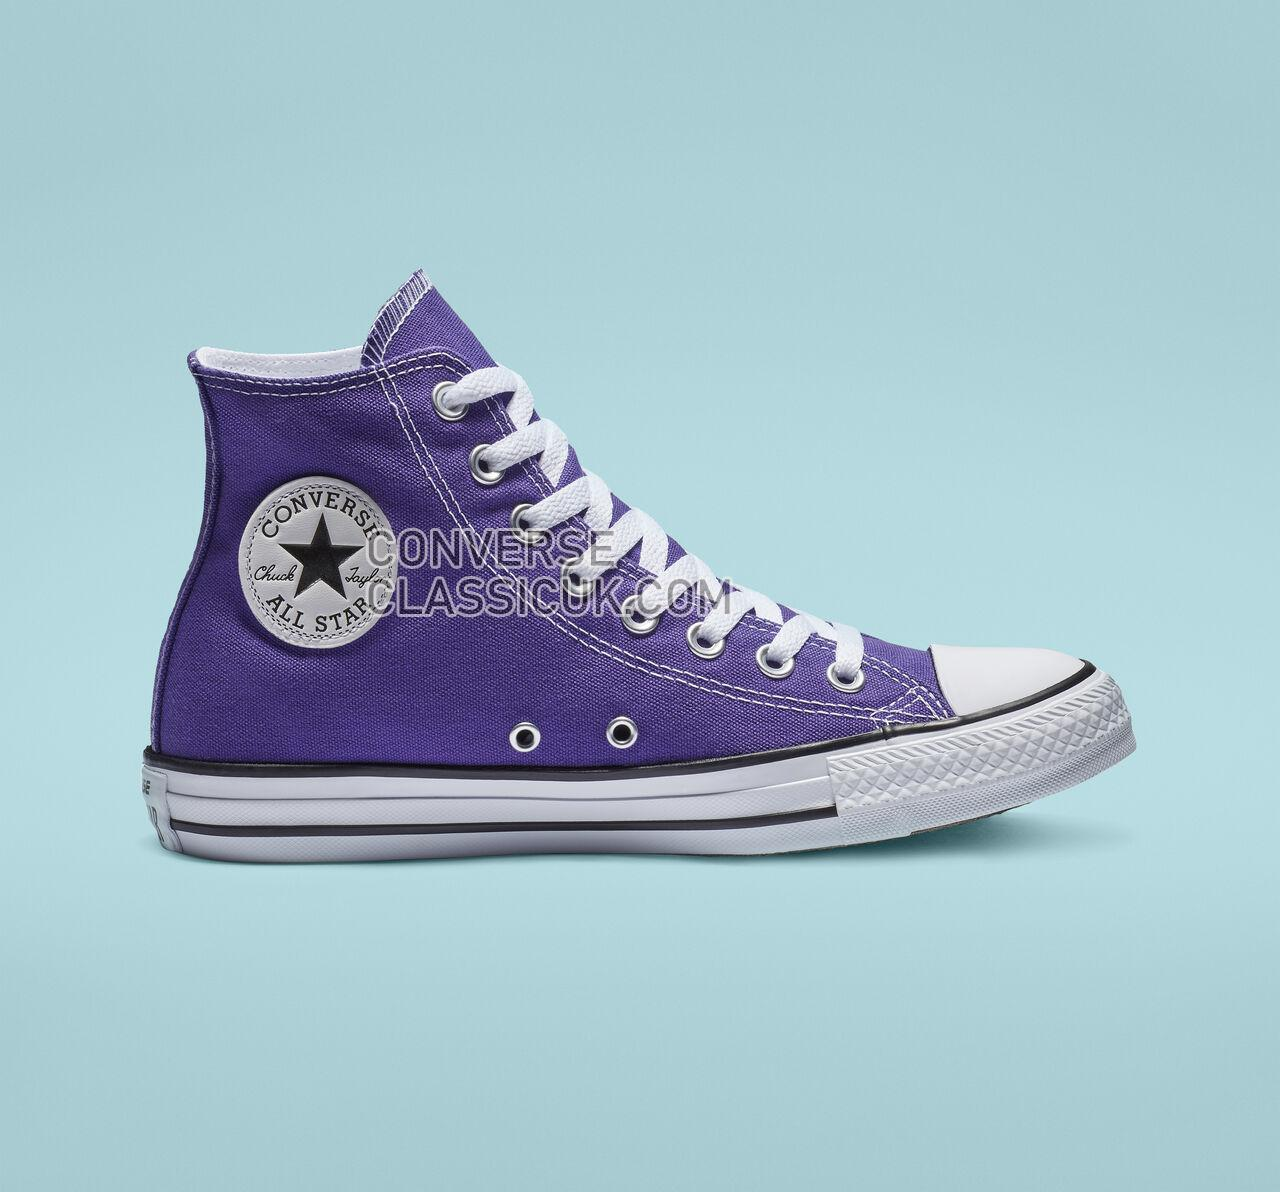 Converse Chuck Taylor All Star High Top Mens Womens Unisex 137833F Electric Purple Shoes